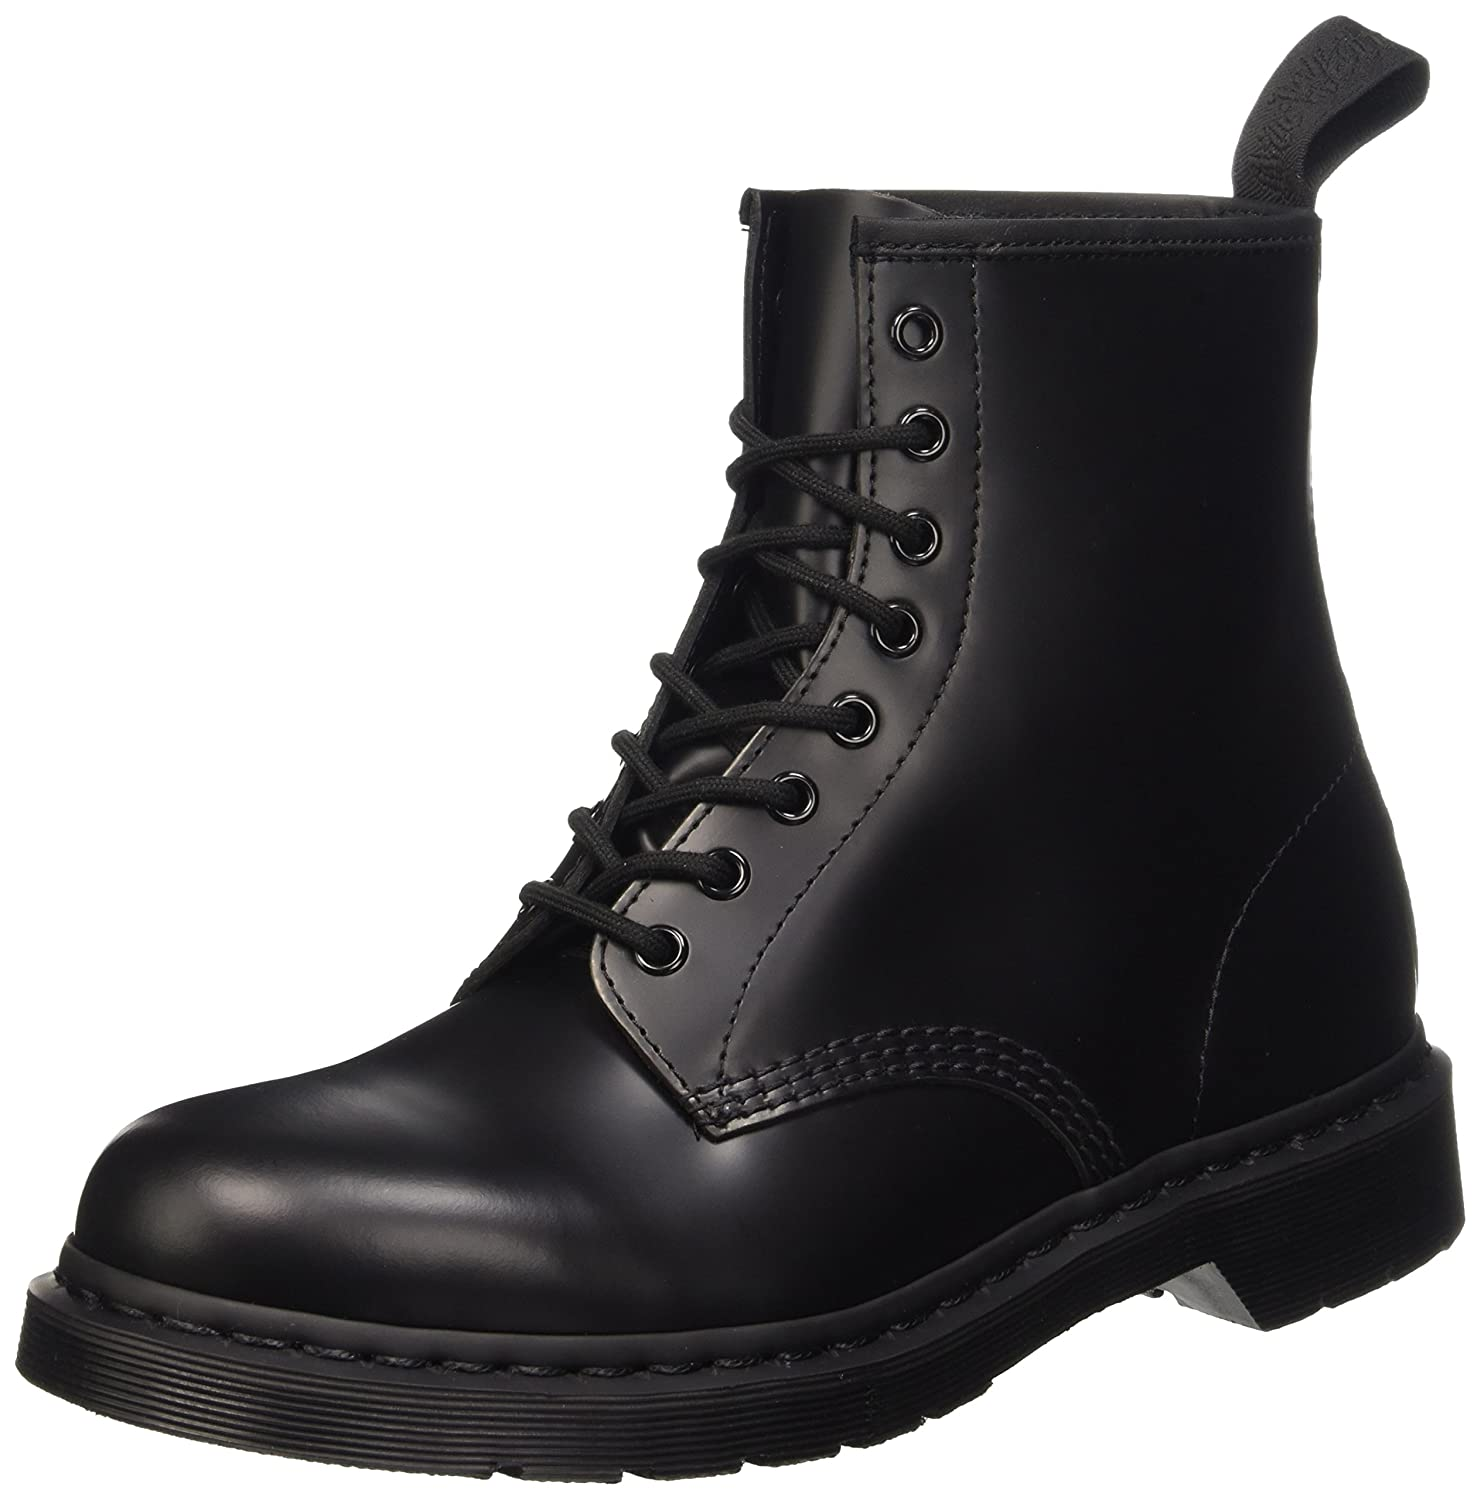 Dr. Martens Unisex 1460 8-Tie Lace-Up Boot B007PZ560W 40 M EU|Black